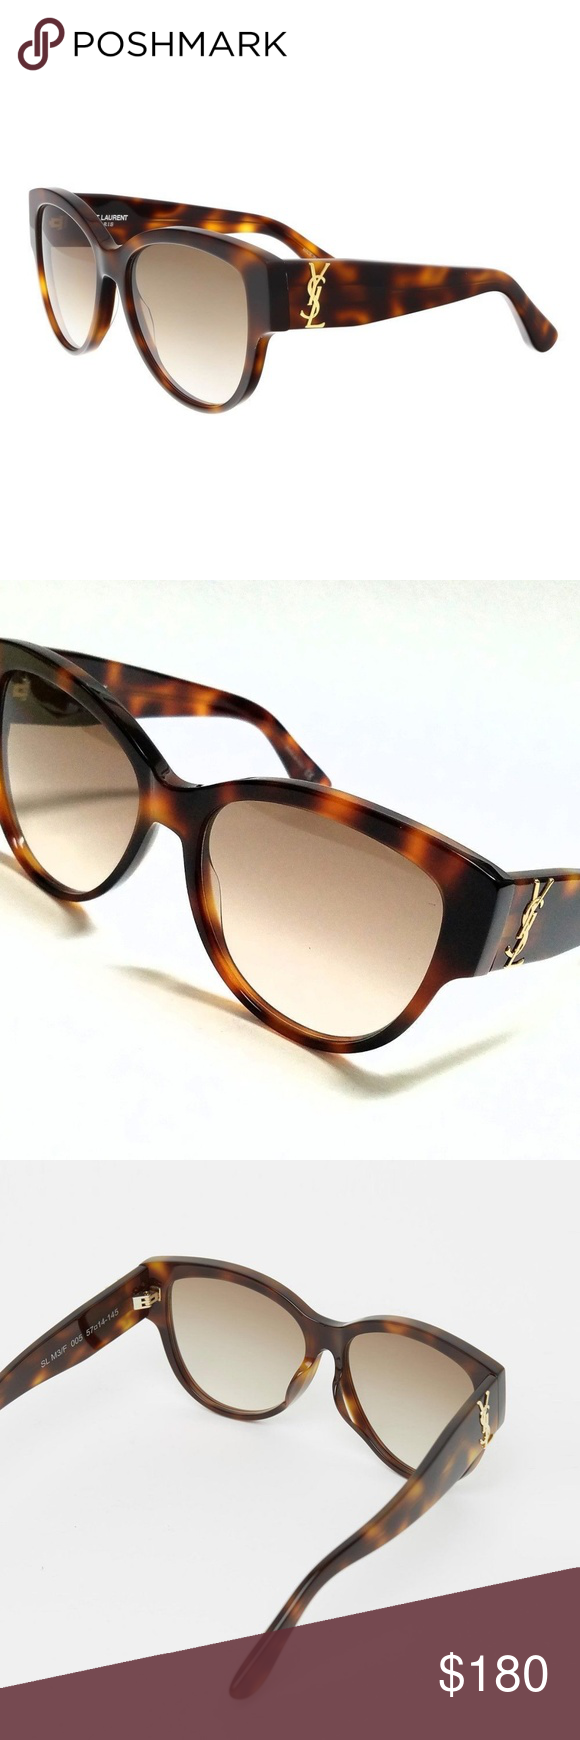 e8fa5da145a AUTHENTIC YSL SL M3 005 Havana Brown Sunglasses 100% AUTHENTIC YSL SAINT  LAURENT SL M3